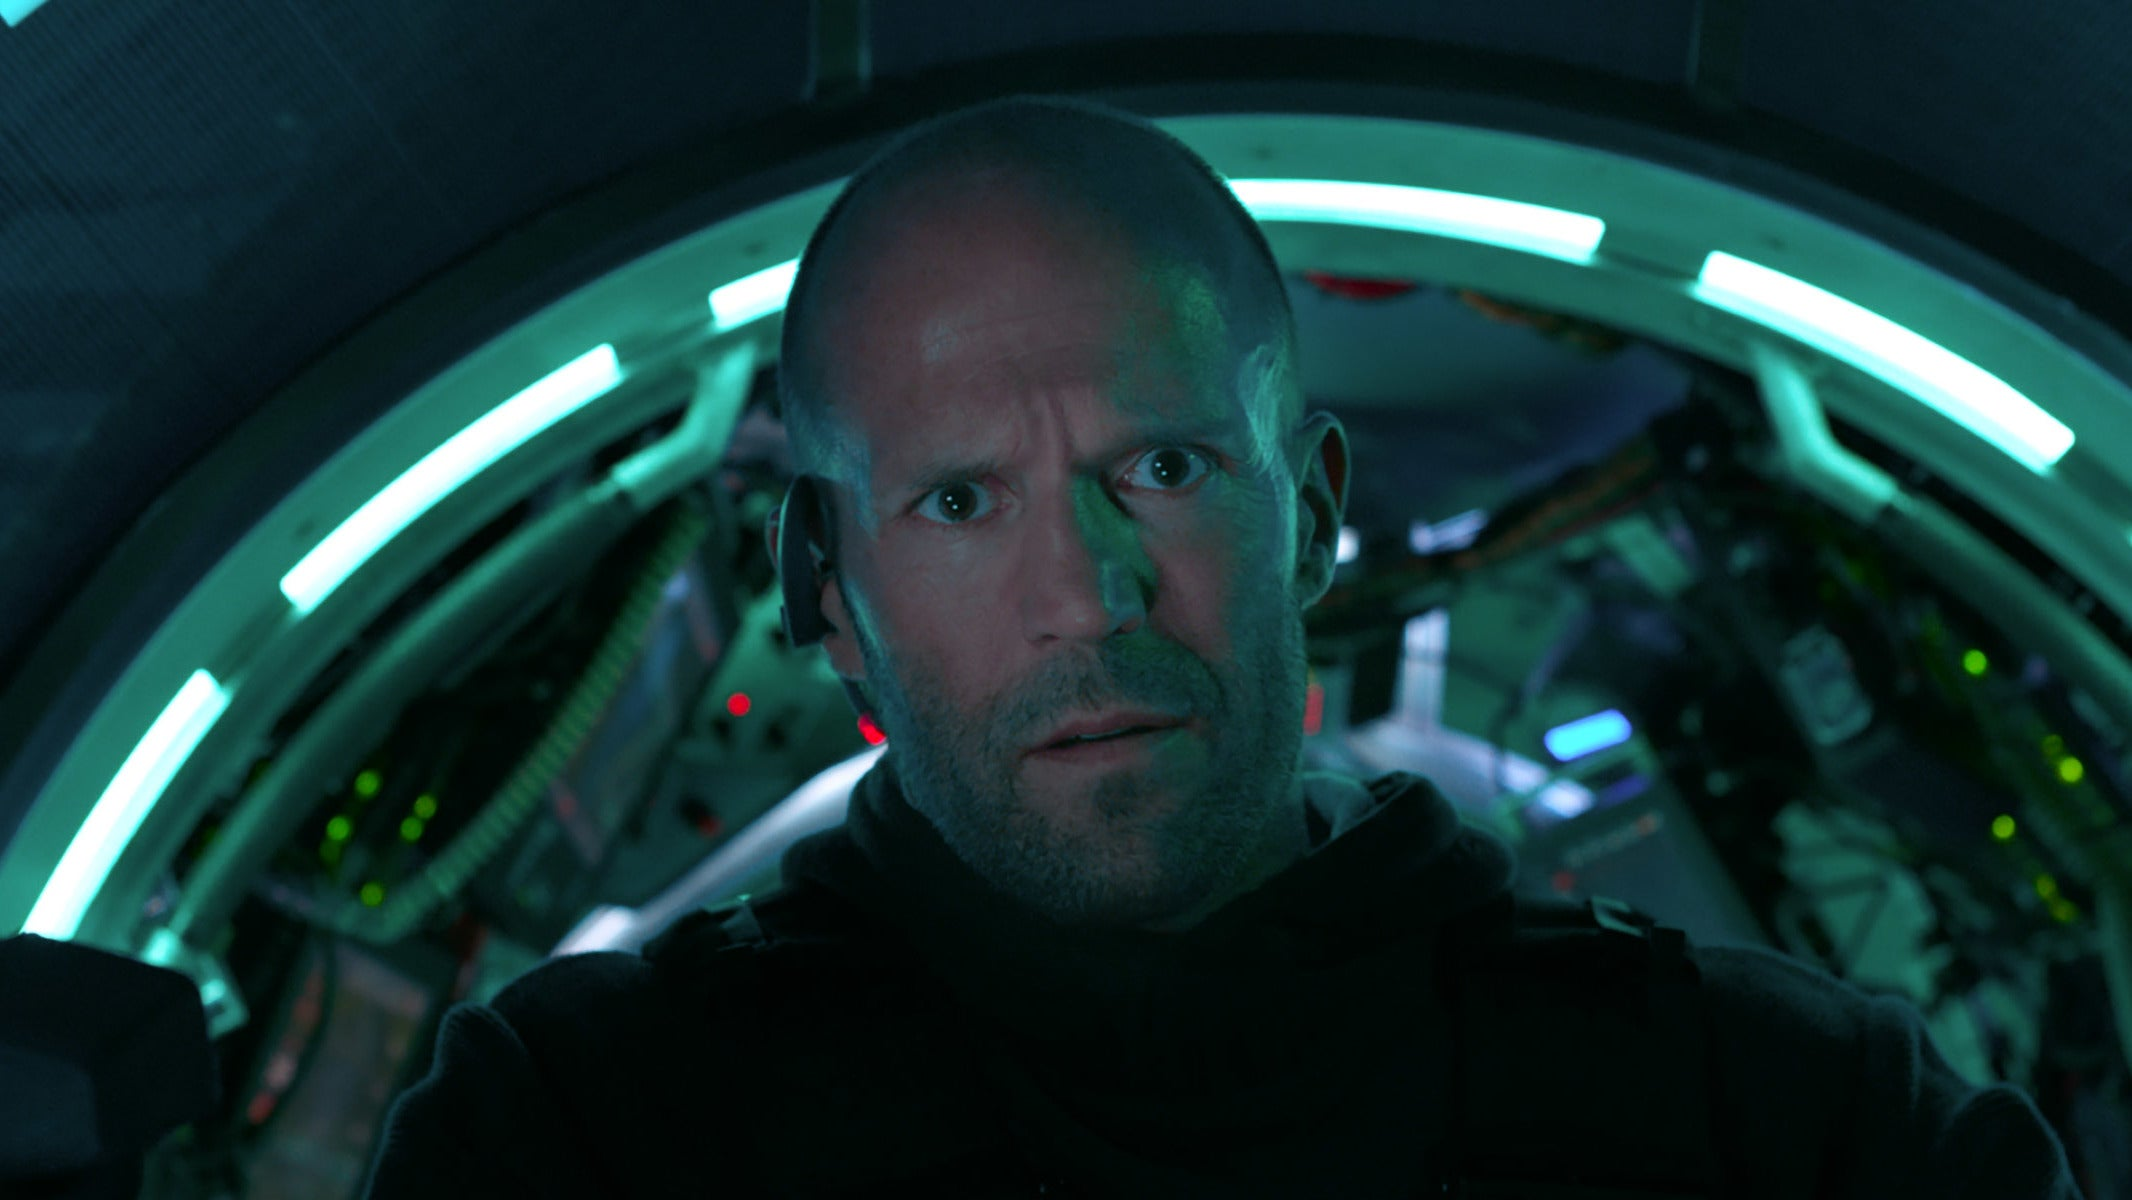 crank death-race feature ghosts-of-mars io9 jason-statham spy the-meg the-one